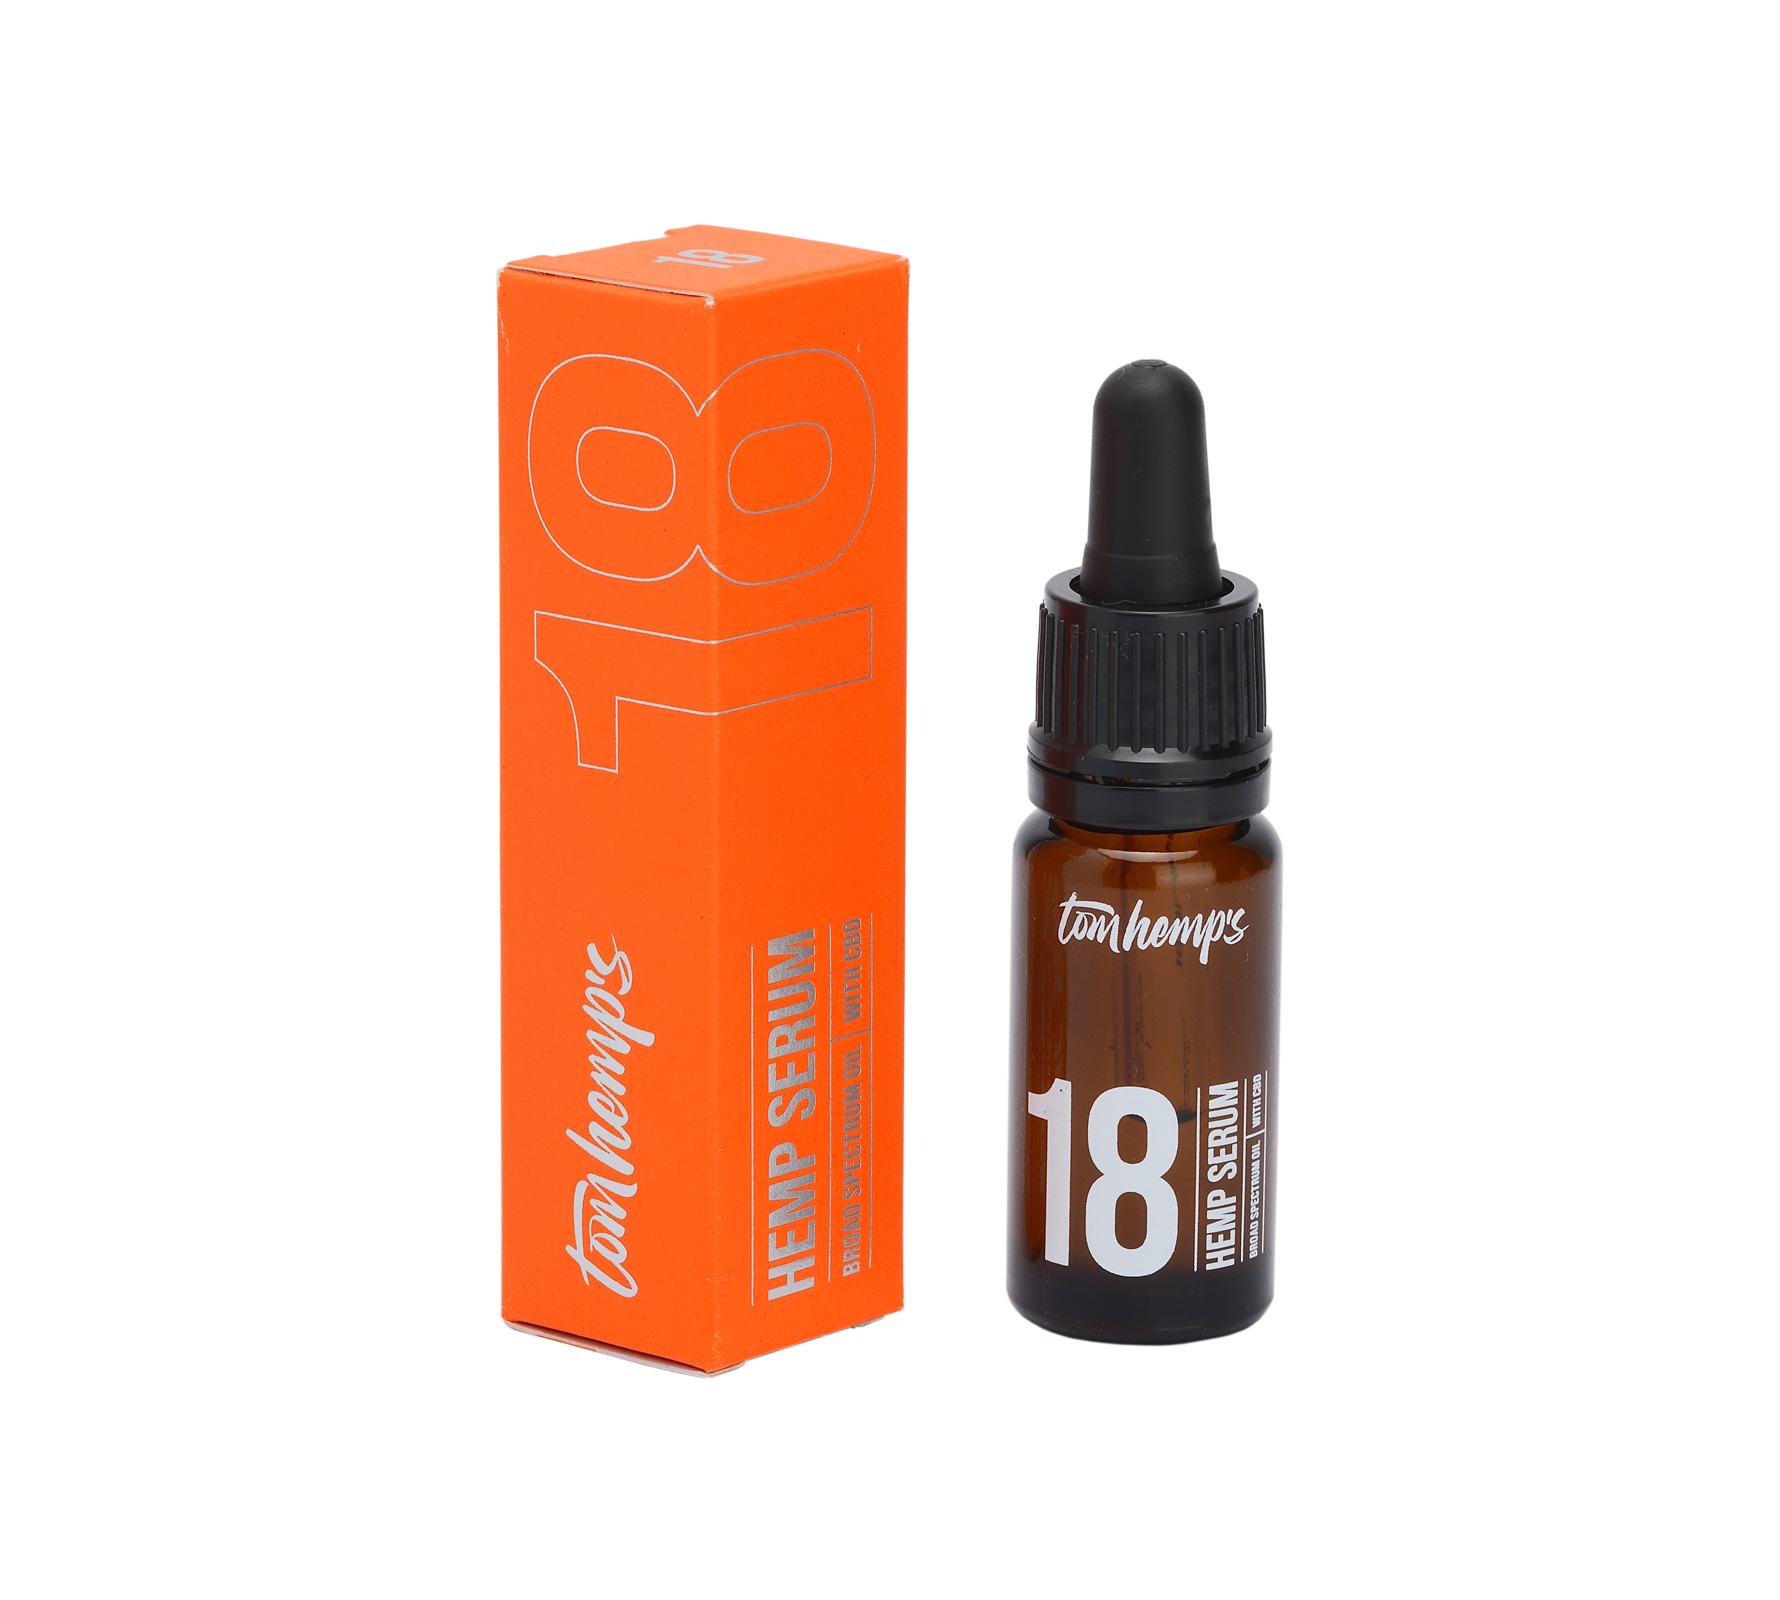 Broad Spectrum CBD Oil 18